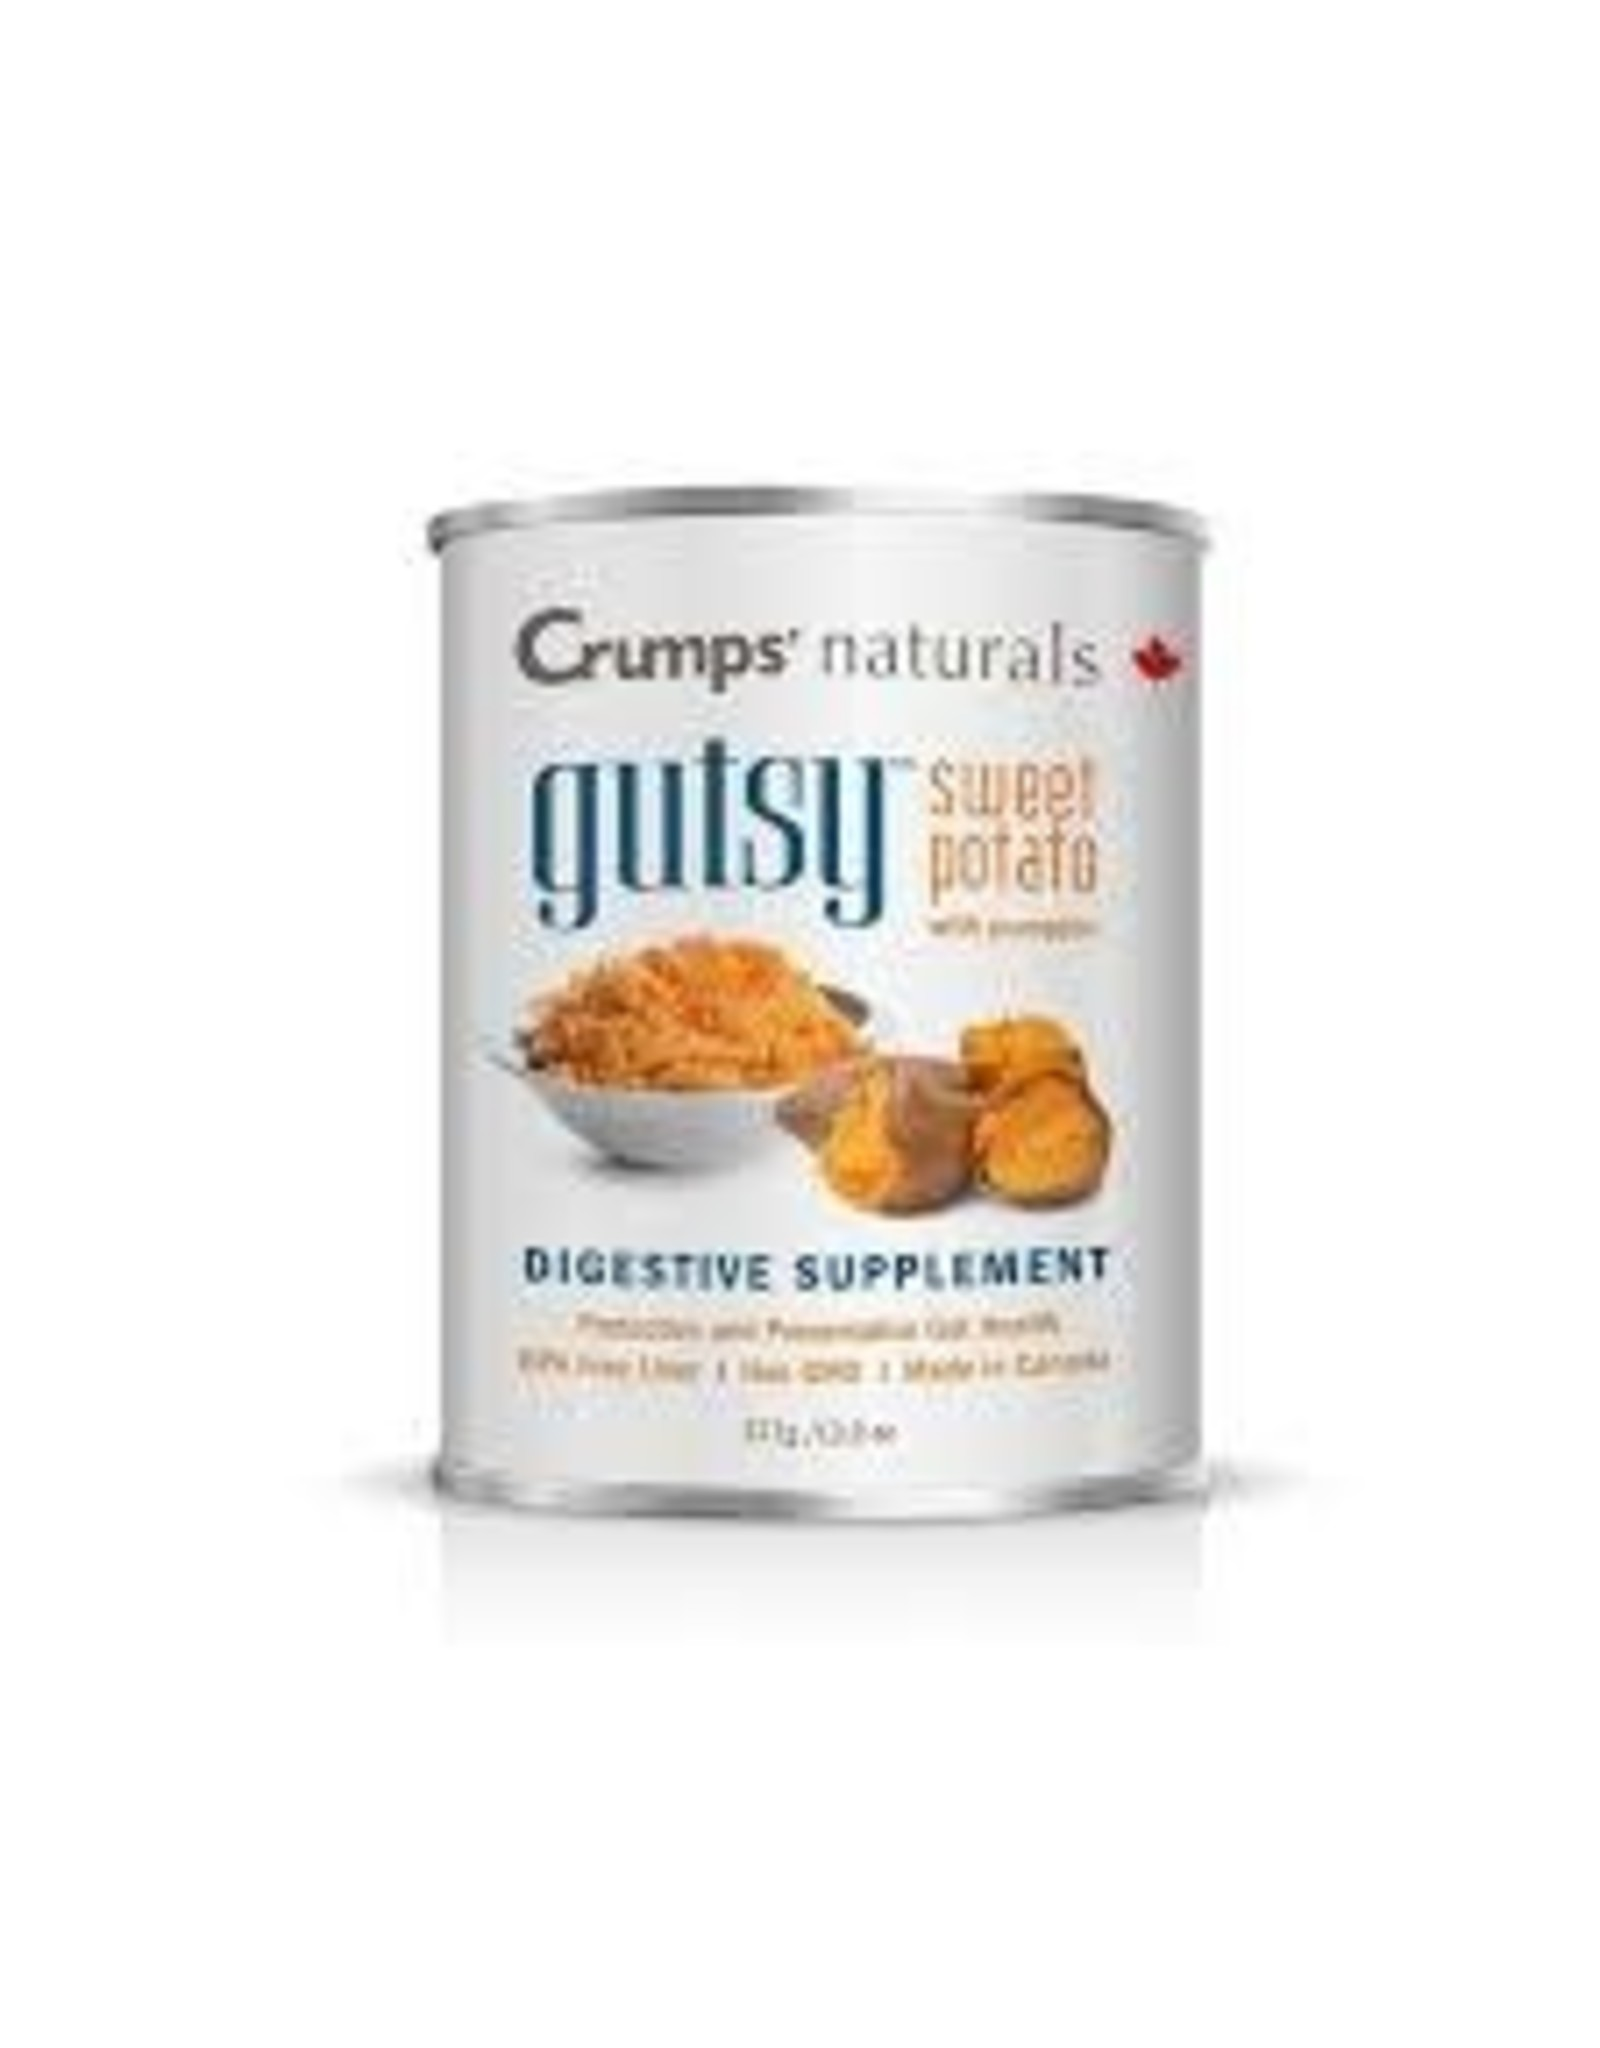 Crumps' Naturals Crumps Naturals - Gutsy Canned Sweet Potatoe Puree